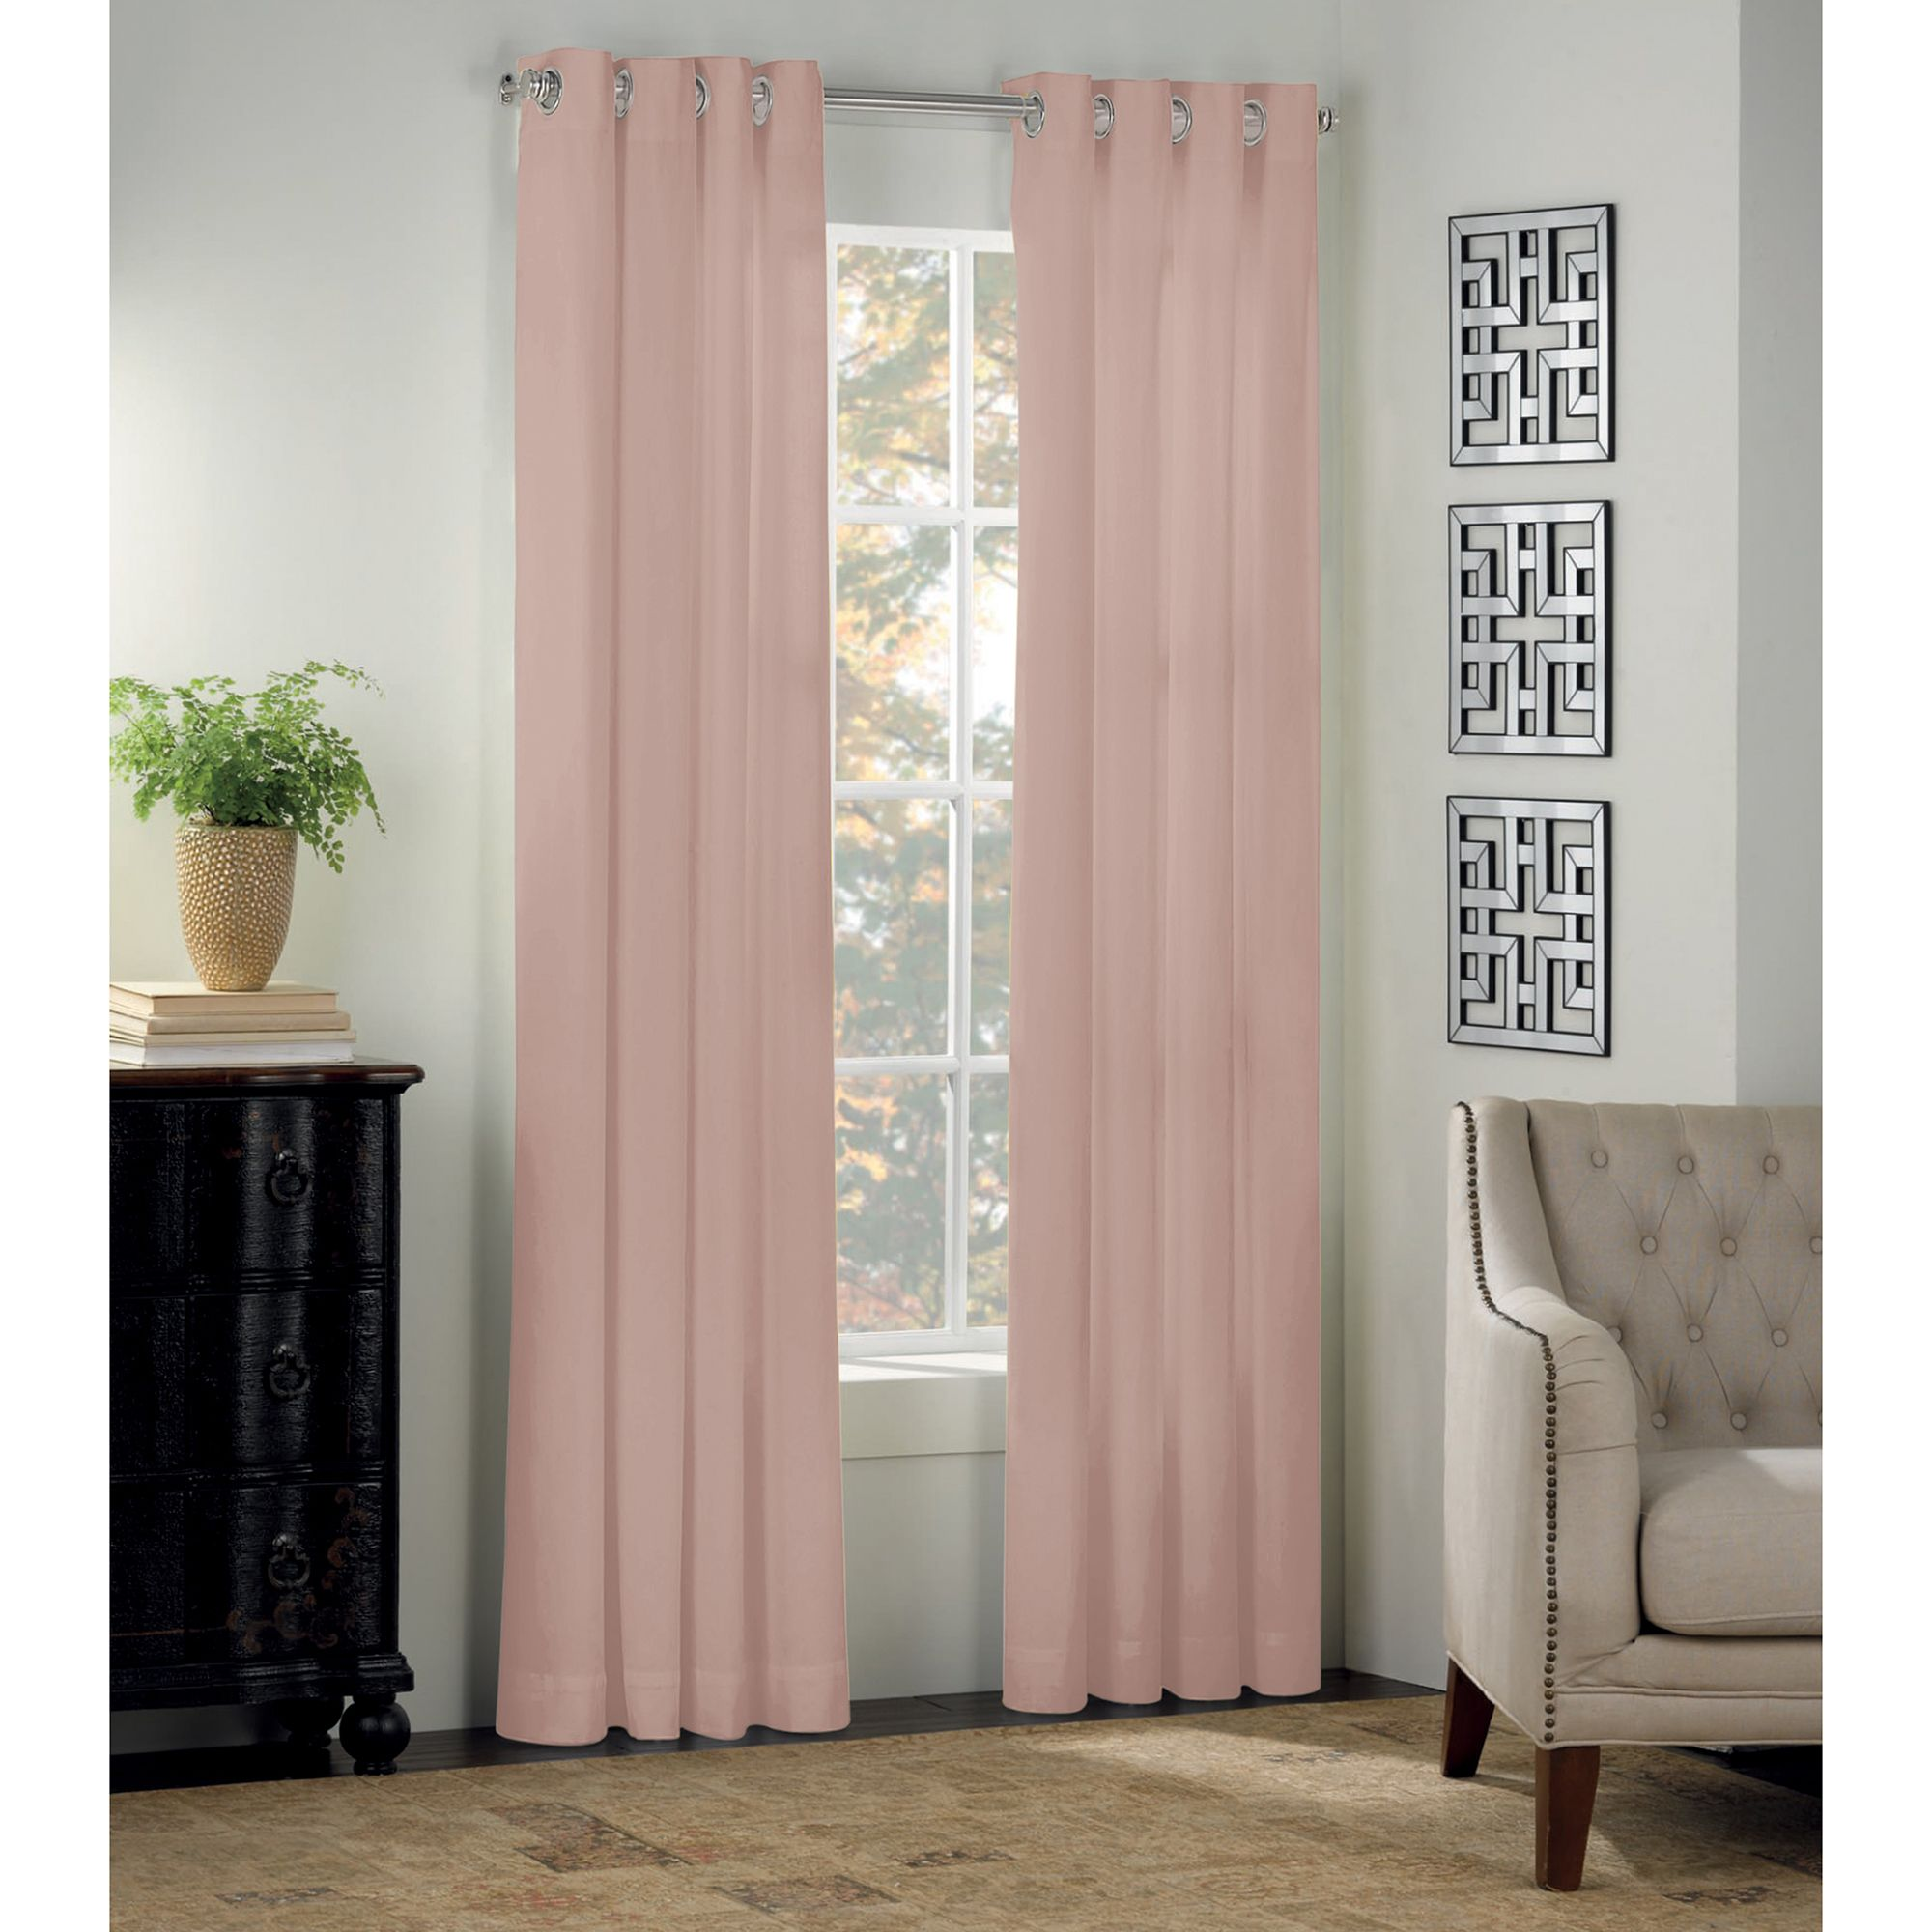 window curtains drapes decorative bed bath beyond image of newport grommet window curtain panel and valance